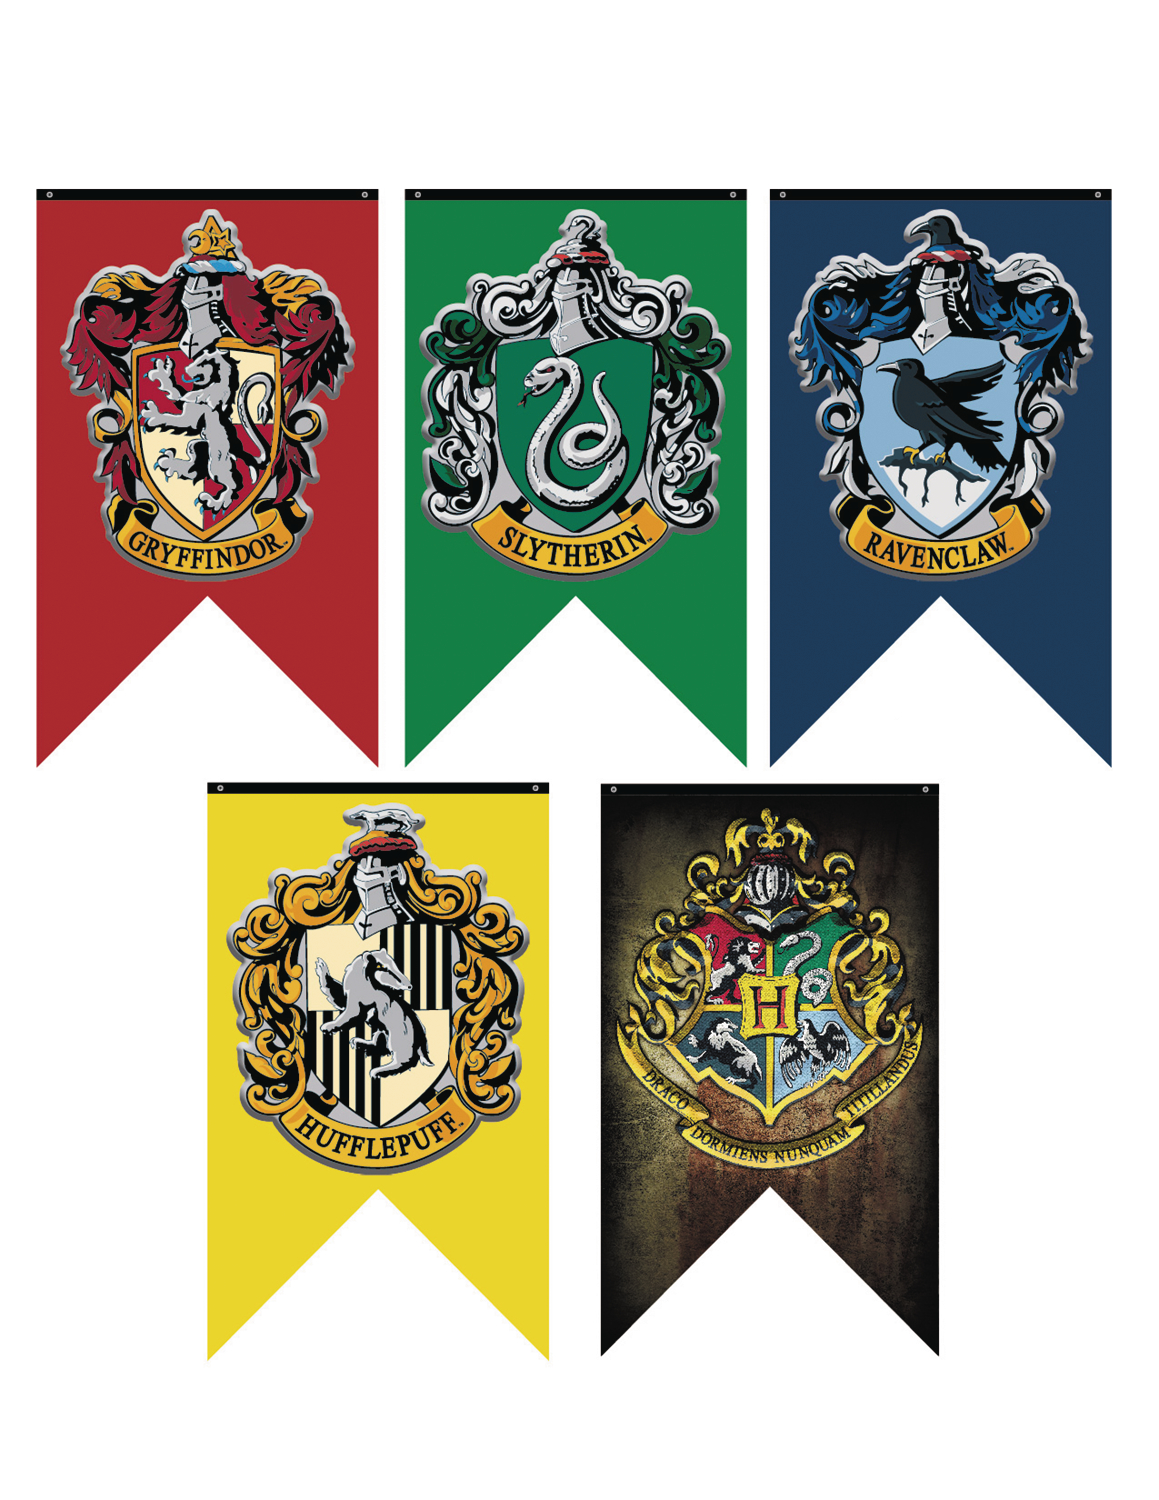 graphic about Hogwarts Banner Printable titled Remarkable Hogwarts Area Banners Printable Bonn Dialogues